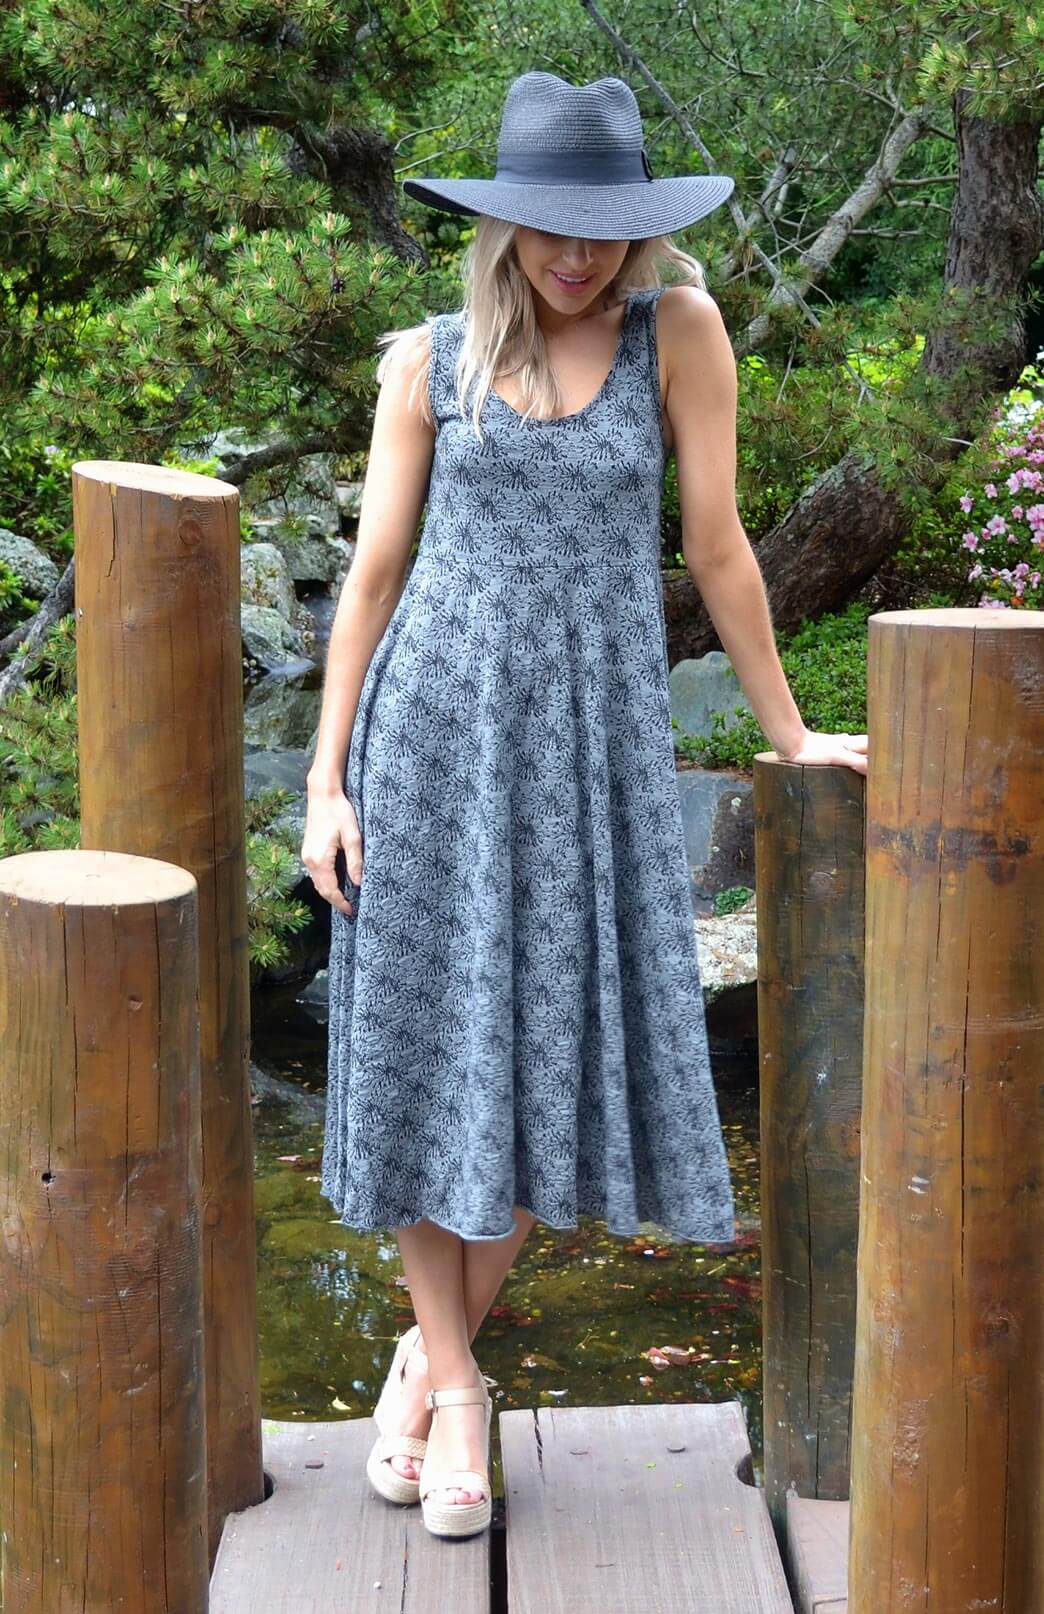 Fan Dress - Women's Black & Grey Floral Wool Sleeveless Spring Dress - Smitten Merino Tasmania Australia